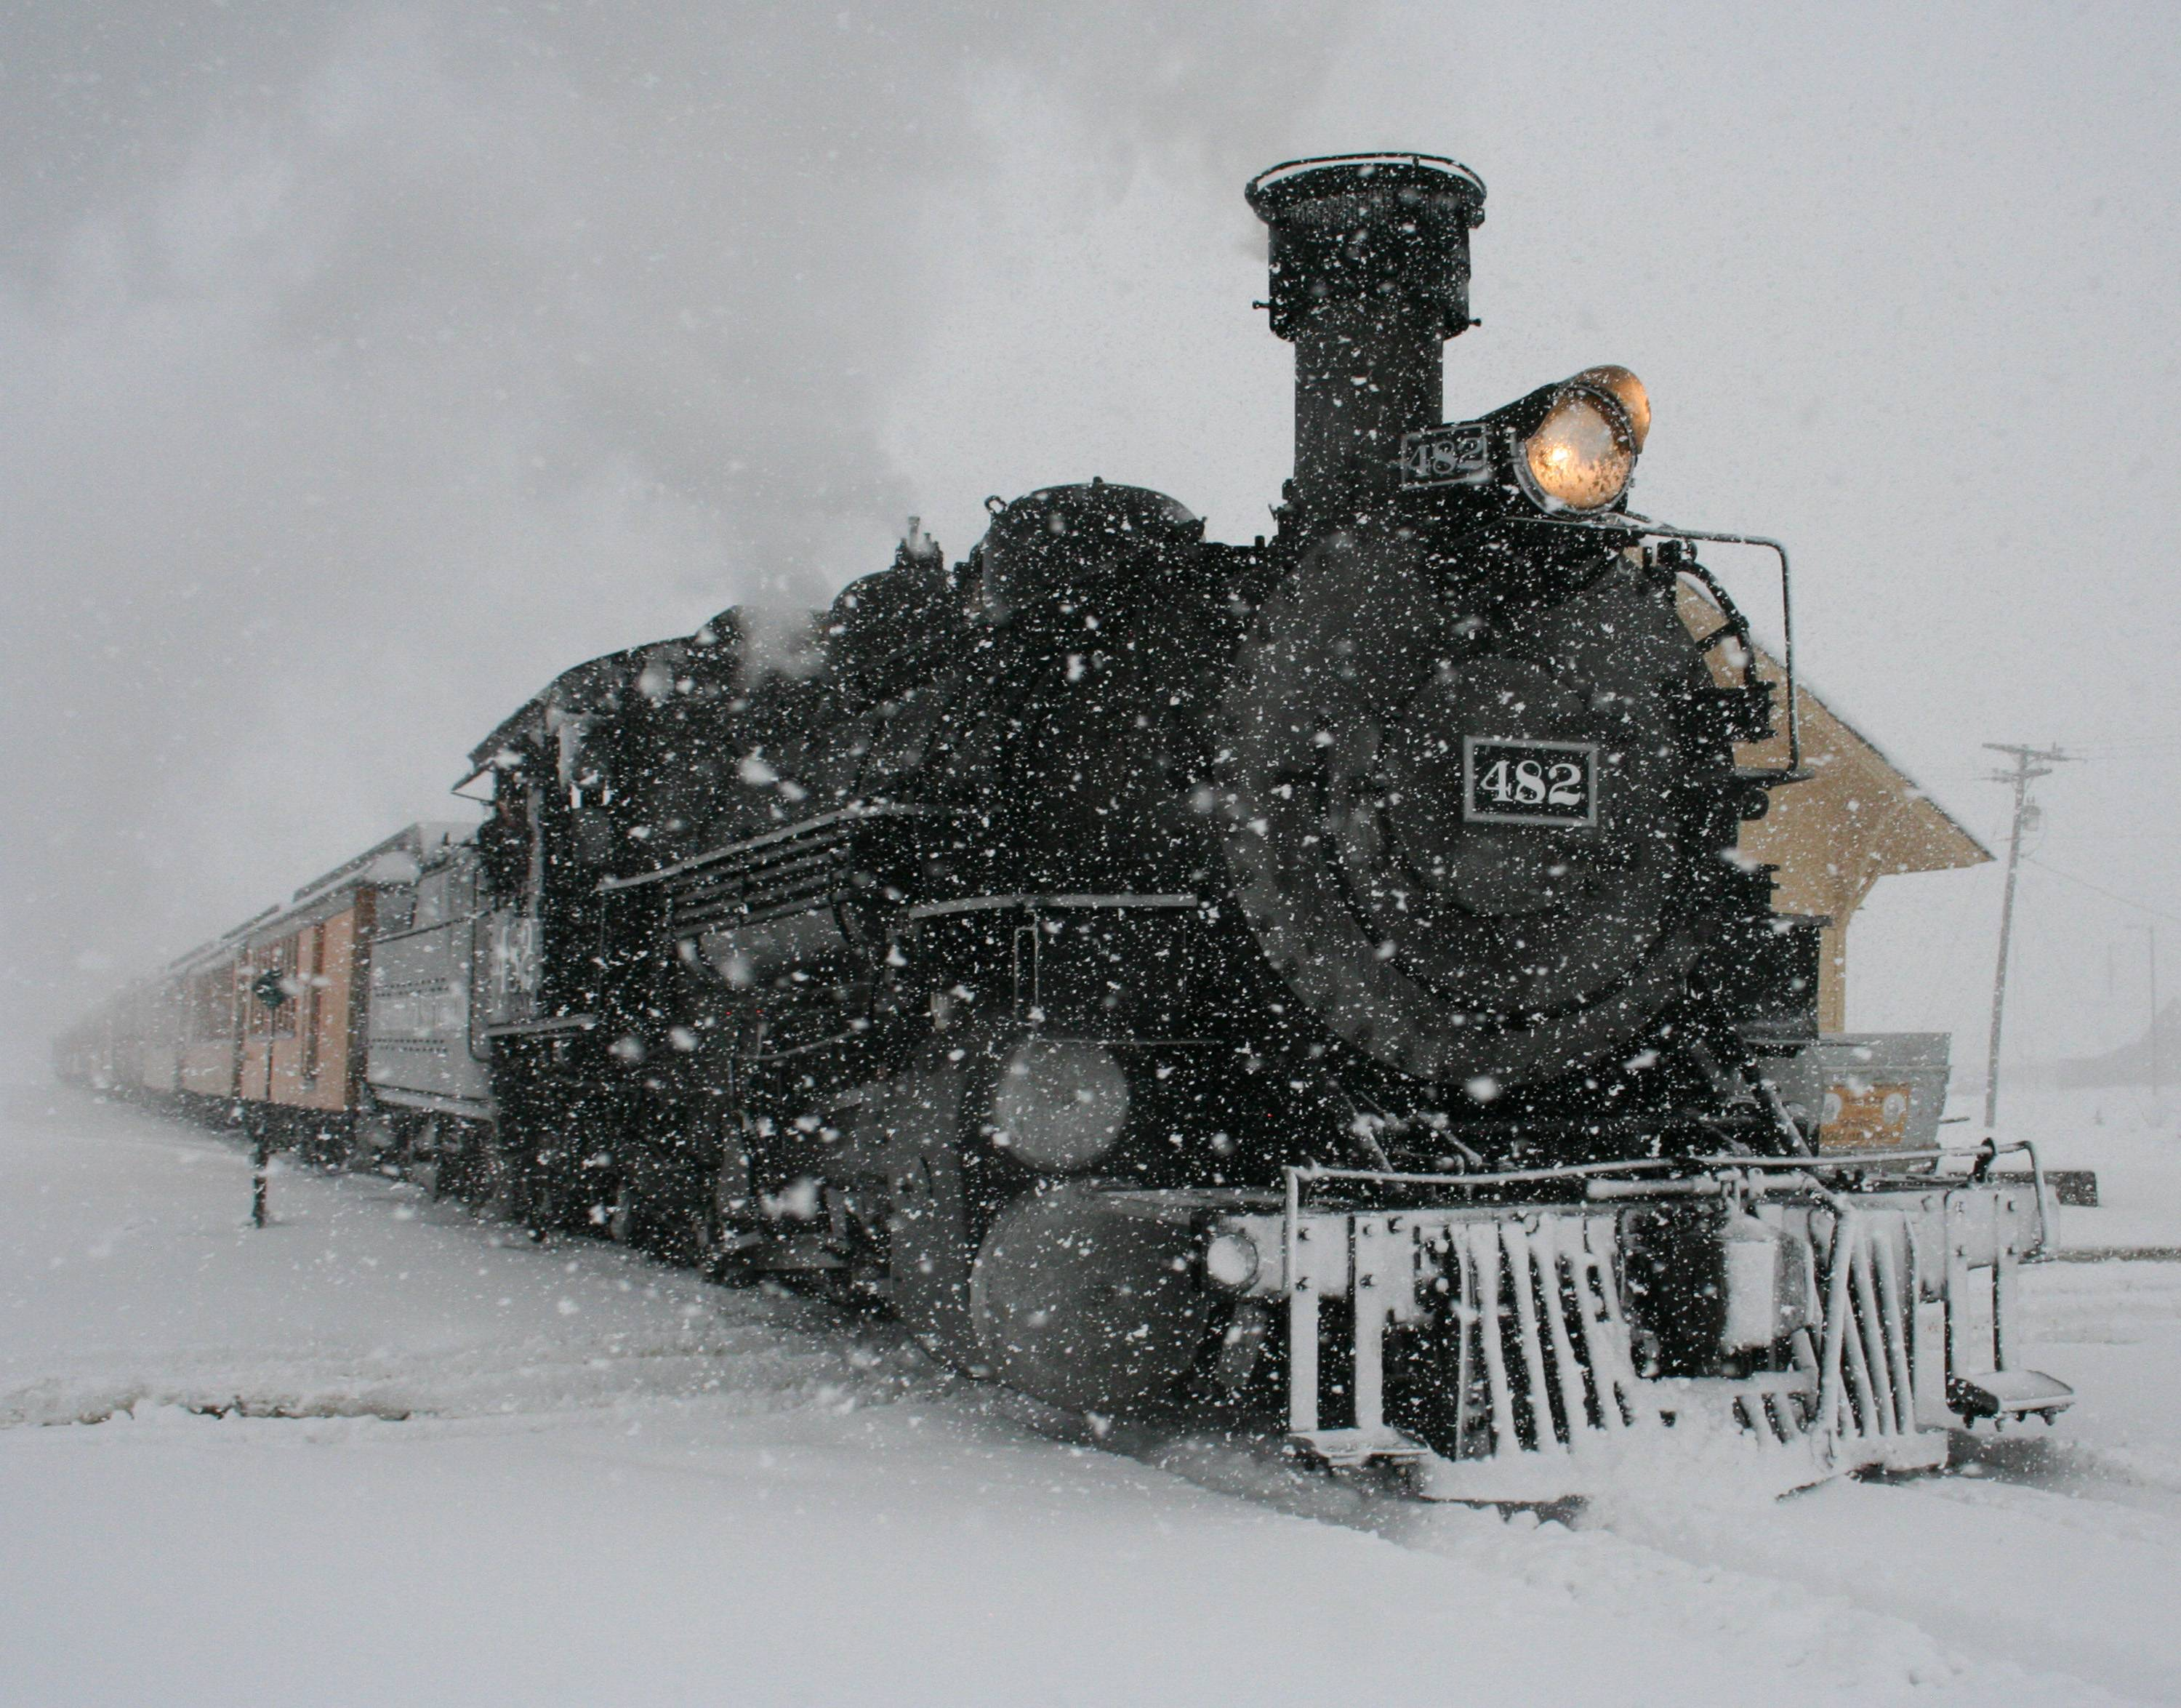 A Durango & Silverton Narrow Gauge Railroad passenger train arrives in Silverton, Colo., Sunday in the midst of a severe snowstorm that dropped more than a foot on the San Juan Mountains of southwest Colorado.